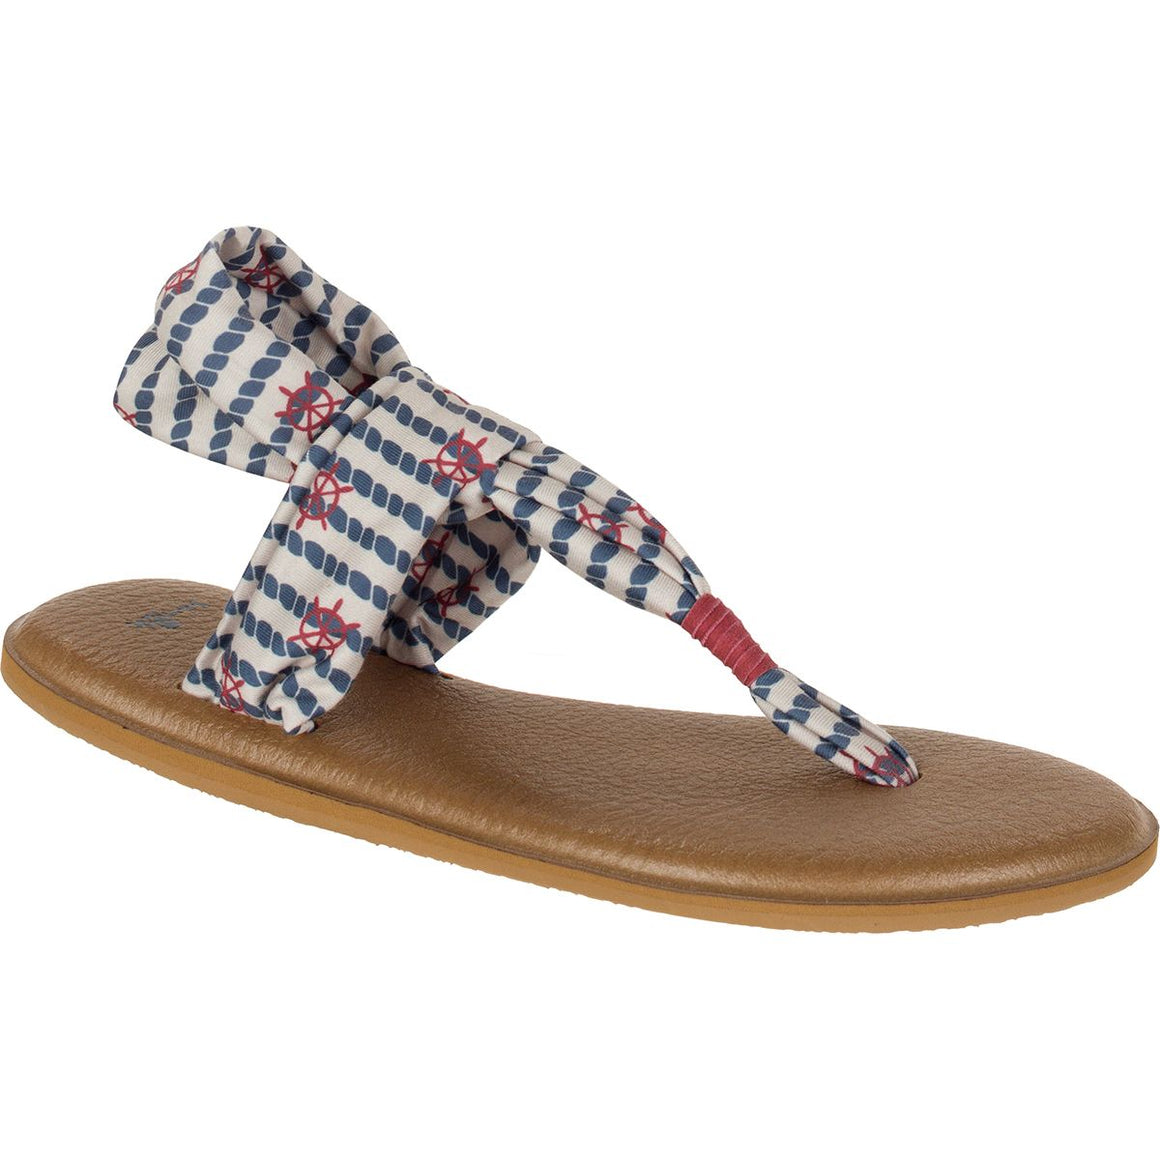 Sanuk Yoga Sling 2 Natural Knot The Line Sandals - Women's